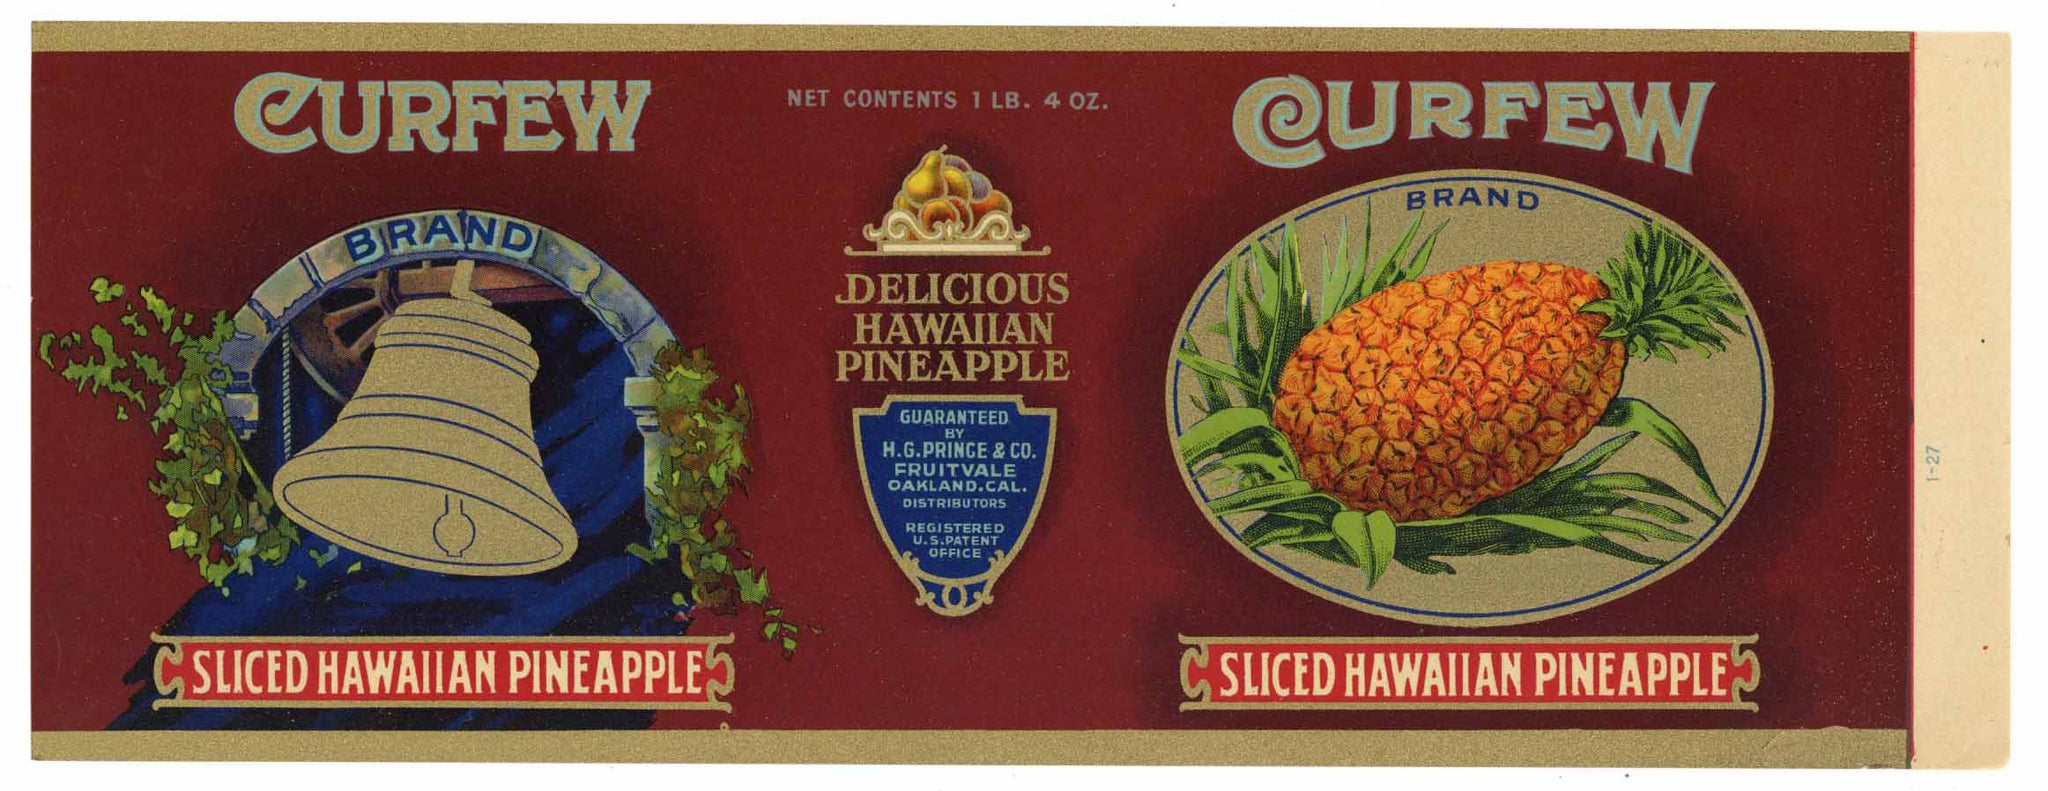 Curfew Brand Vintage Oakland Fruitvale Pineapple Can Label